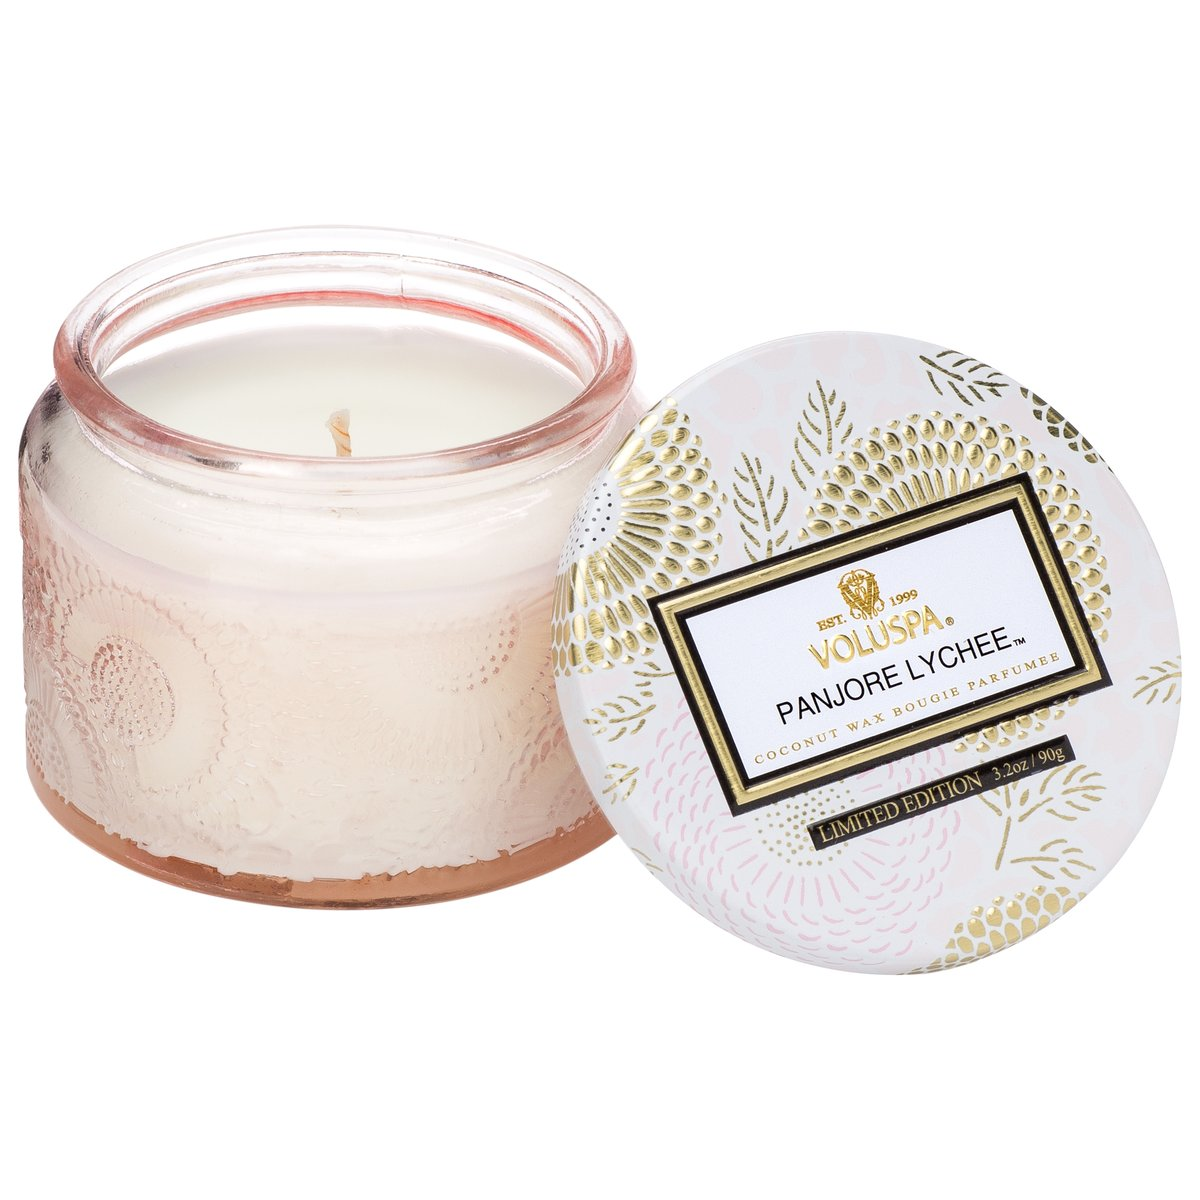 Panjoree Lyche Small Glass Jar 3.2 oz Candle